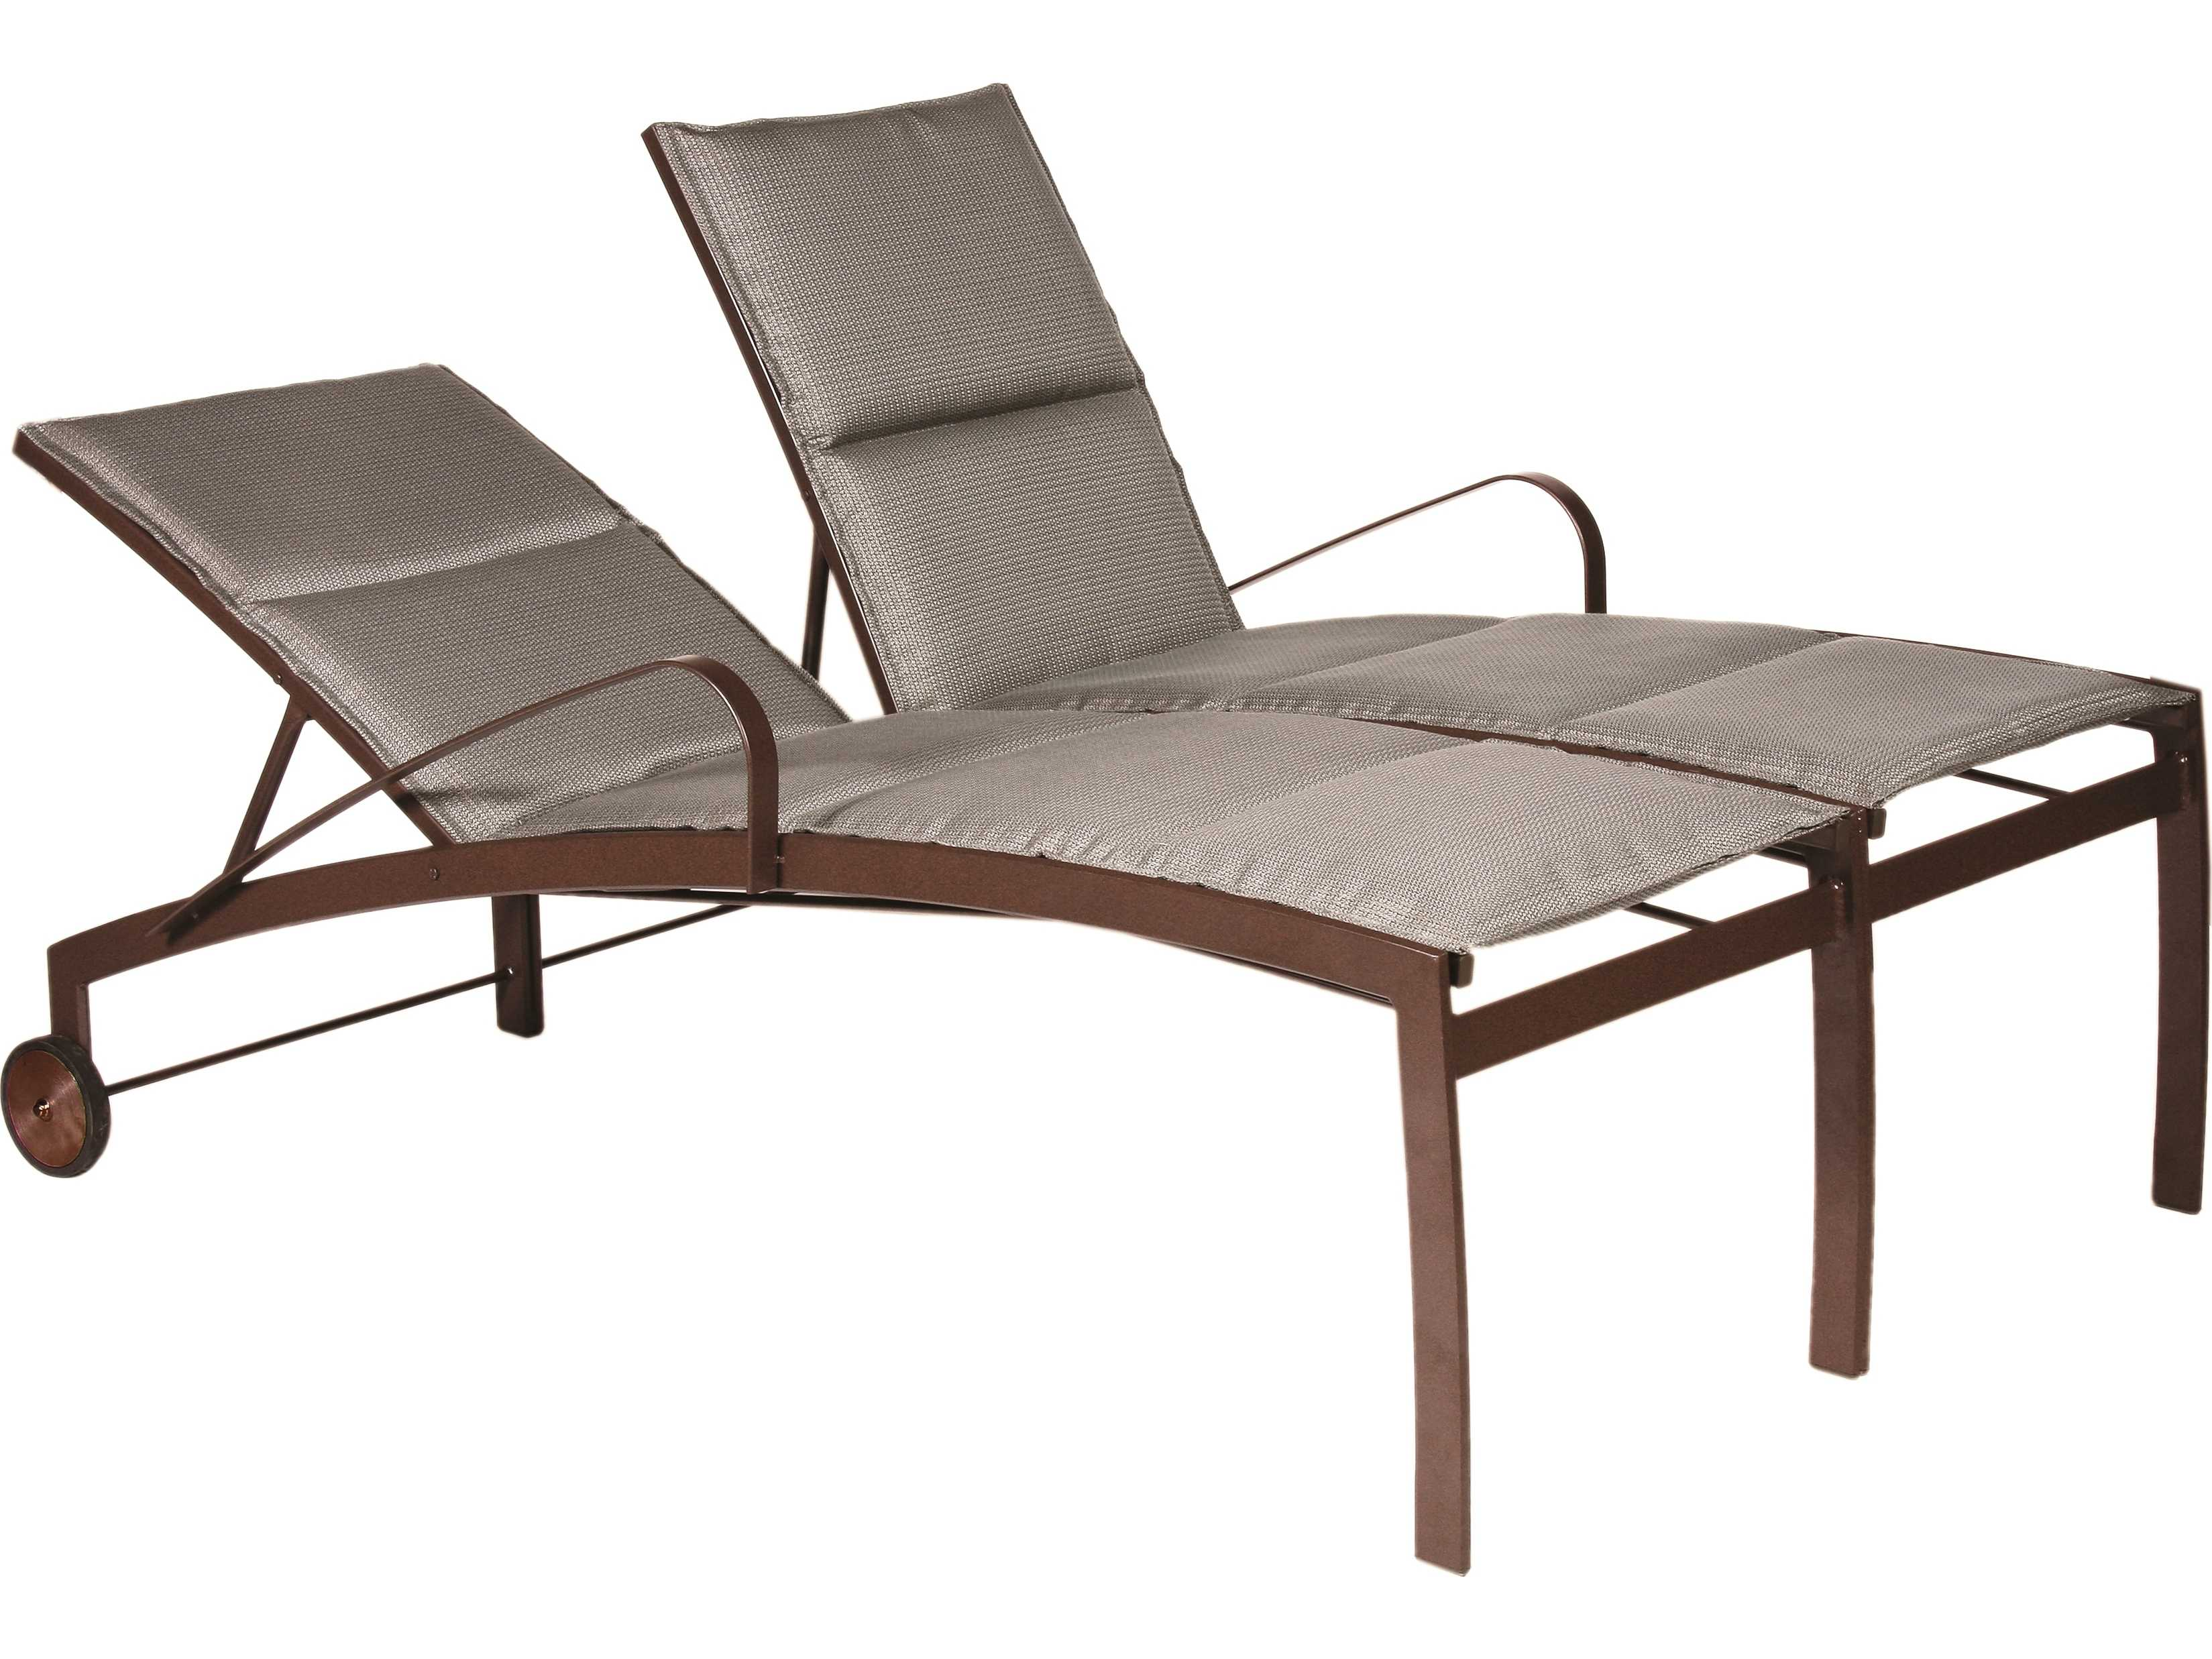 Suncoast vision sling cast aluminum adjustable chaise for Cast aluminum chaise